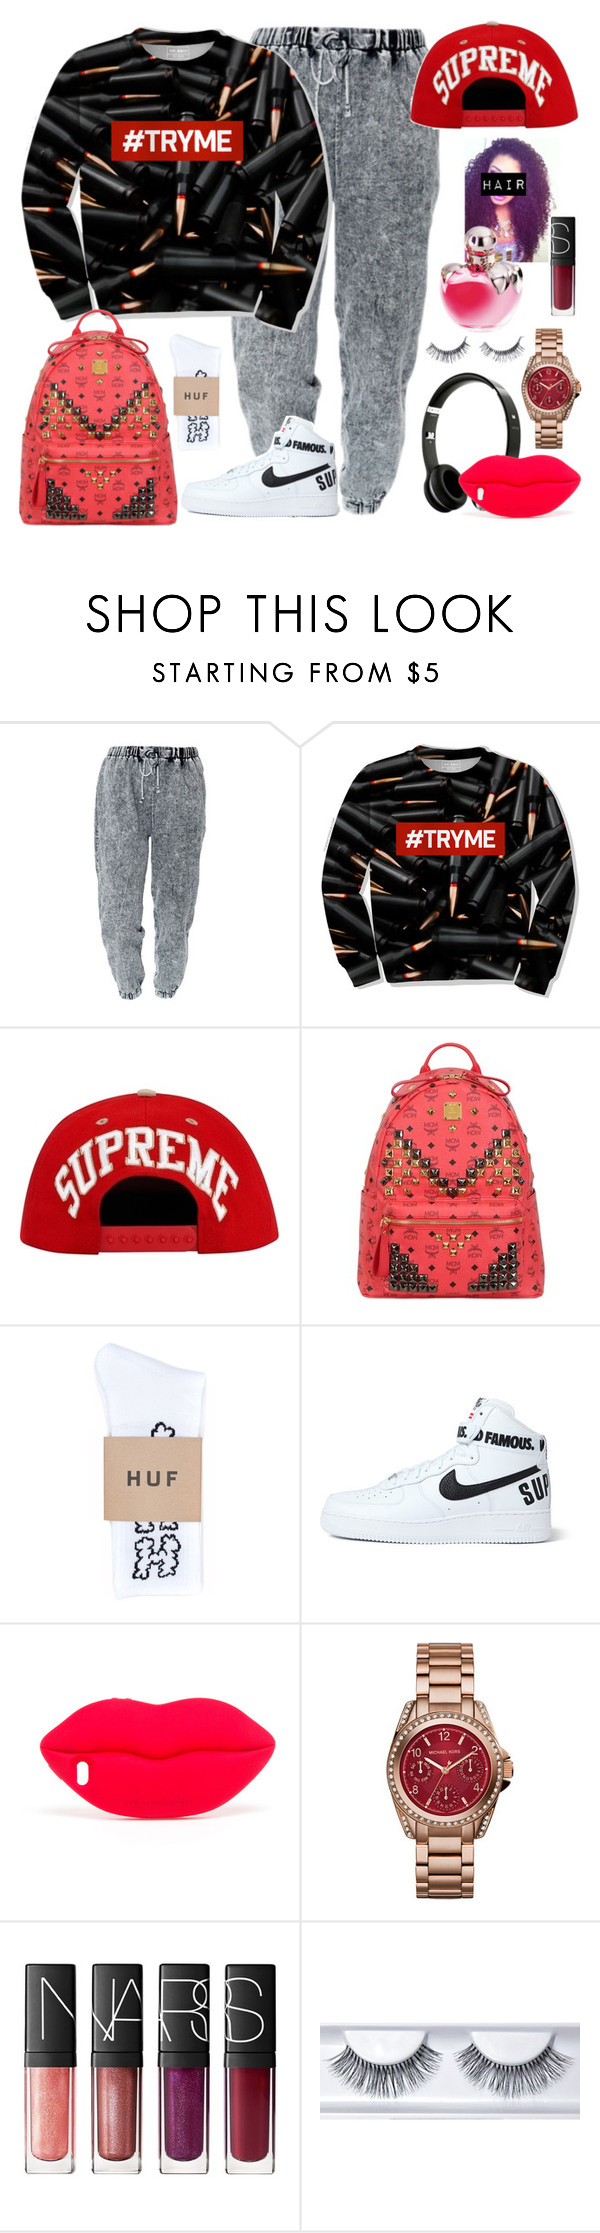 """Actually, don't even think about trying me  #SUPREME"" by cissylion ❤ liked on Polyvore featuring MCM, HUF, Beats by Dr. Dre, NIKE, STELLA McCARTNEY, Michael Kors, NARS Cosmetics and Nina Ricci"